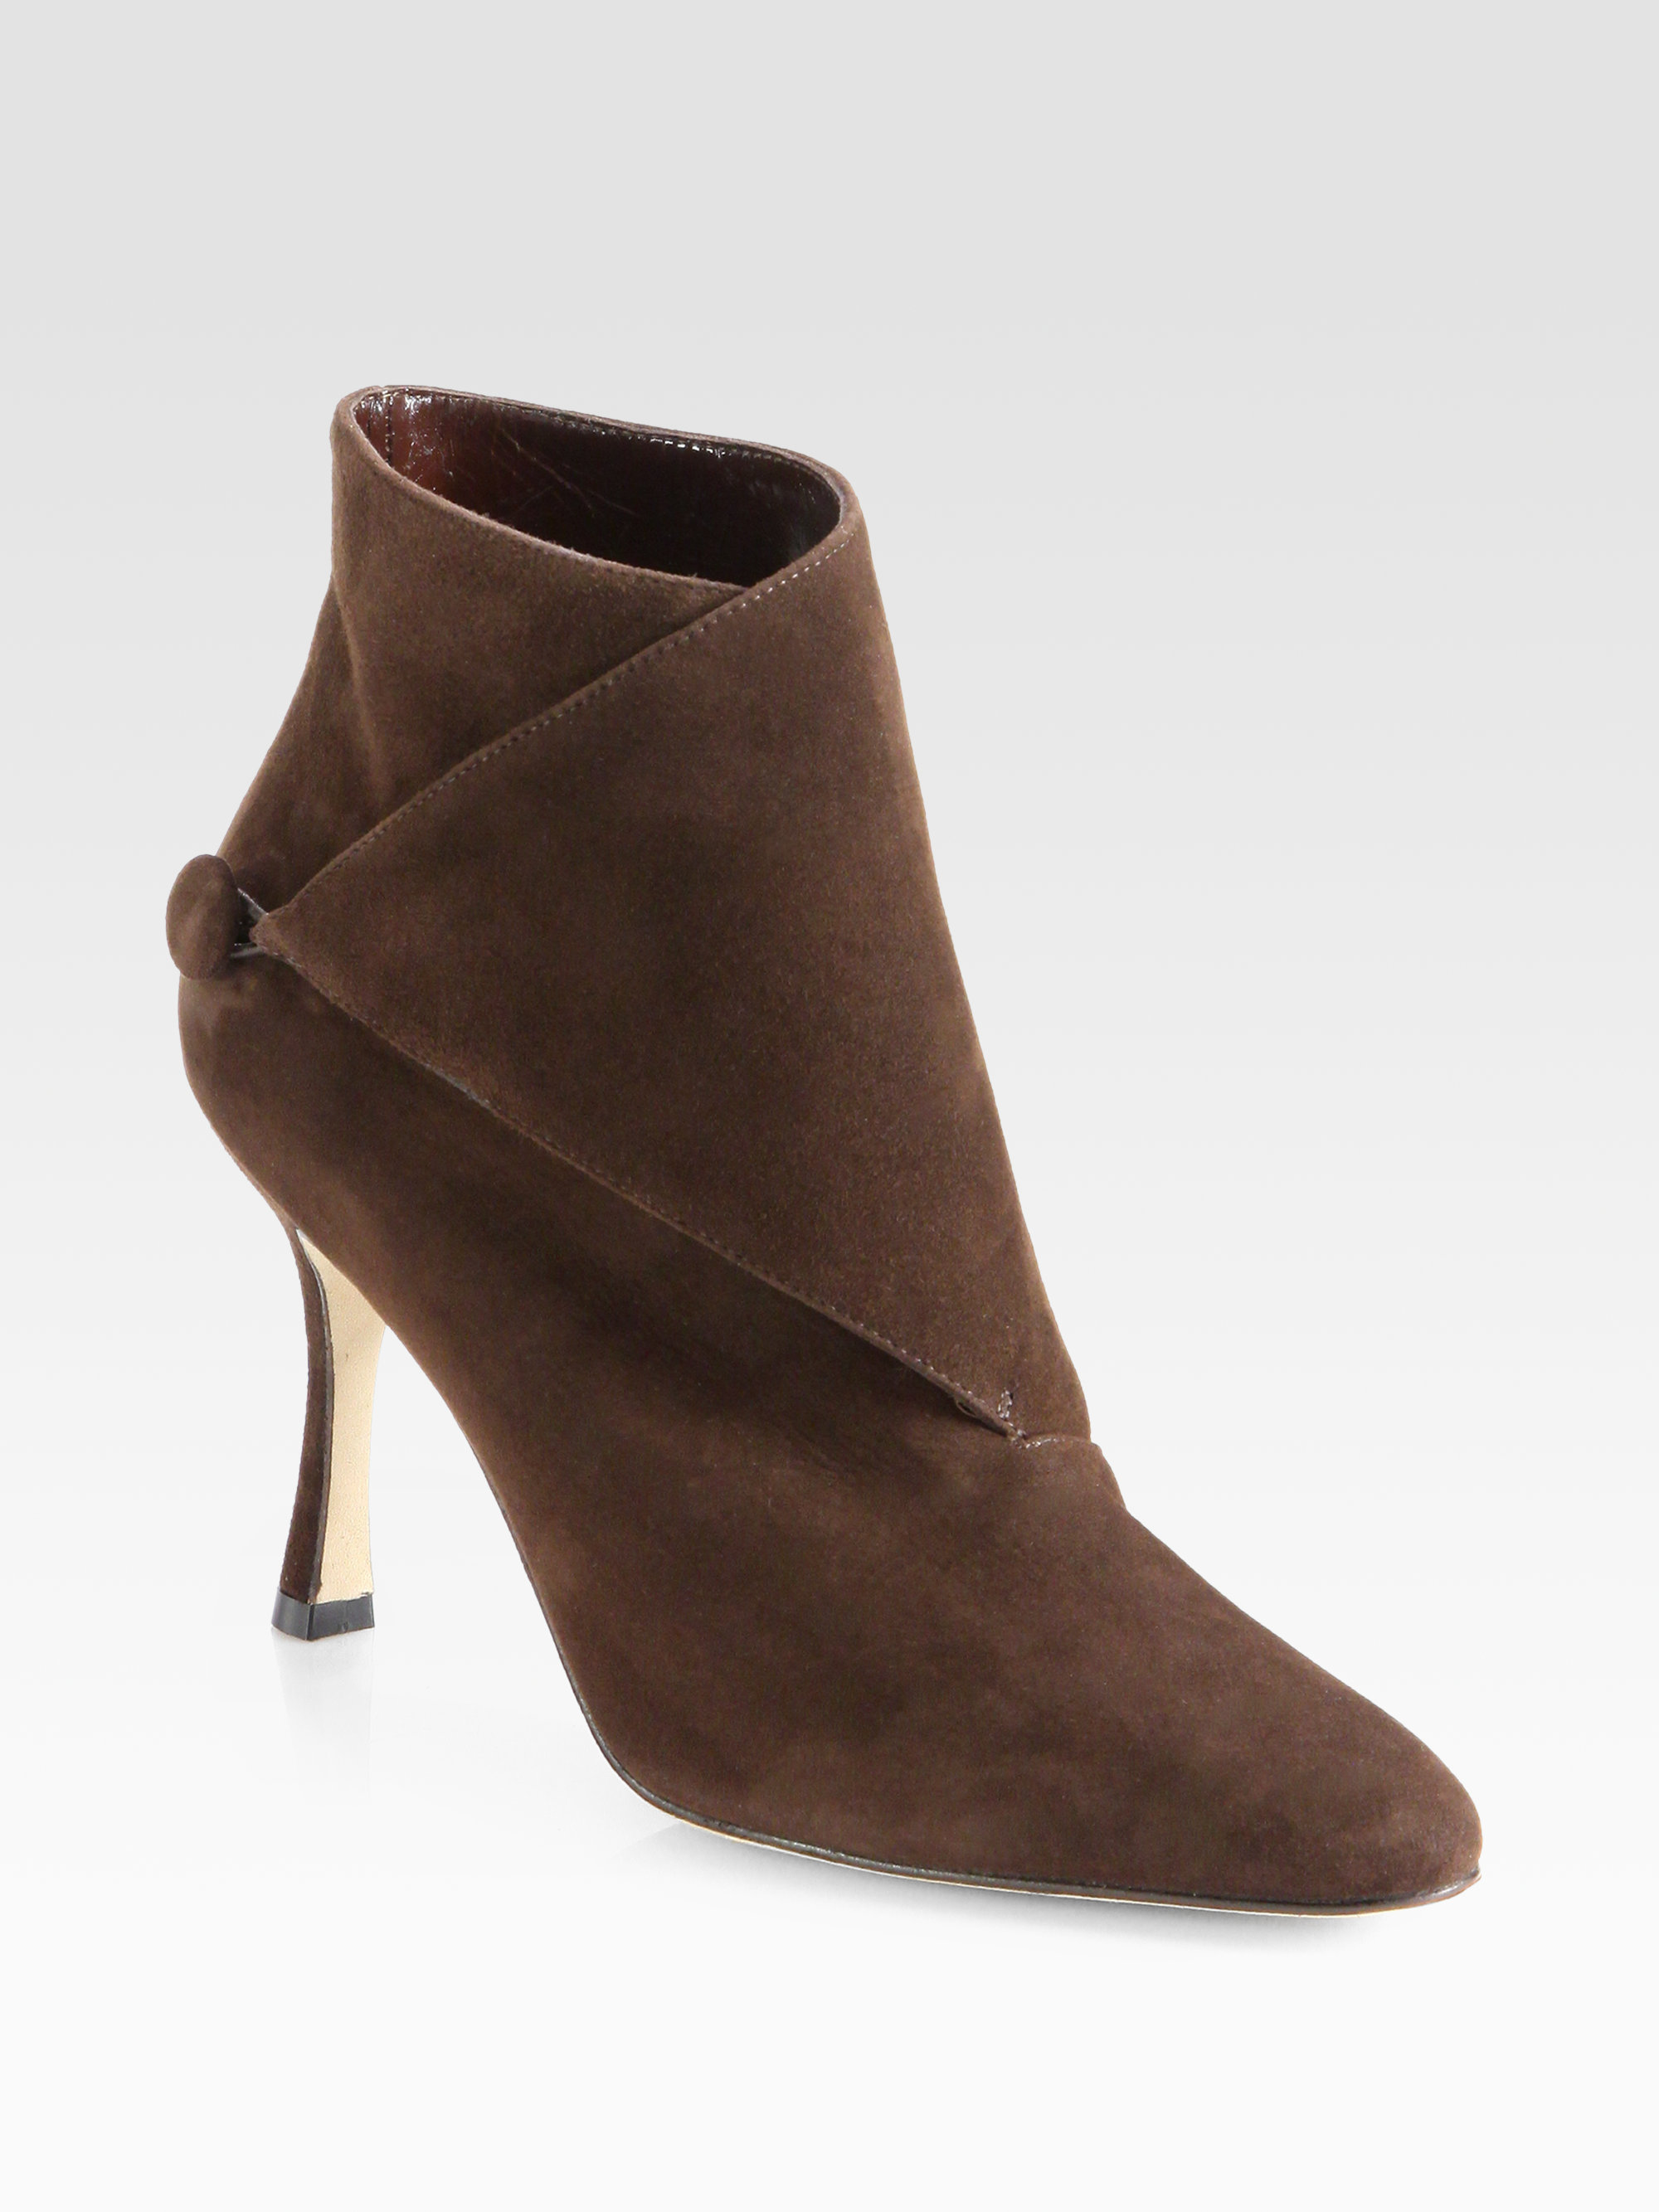 Lyst manolo blahnik diaz suede ankle boots in brown for Shoes by manolo blahnik